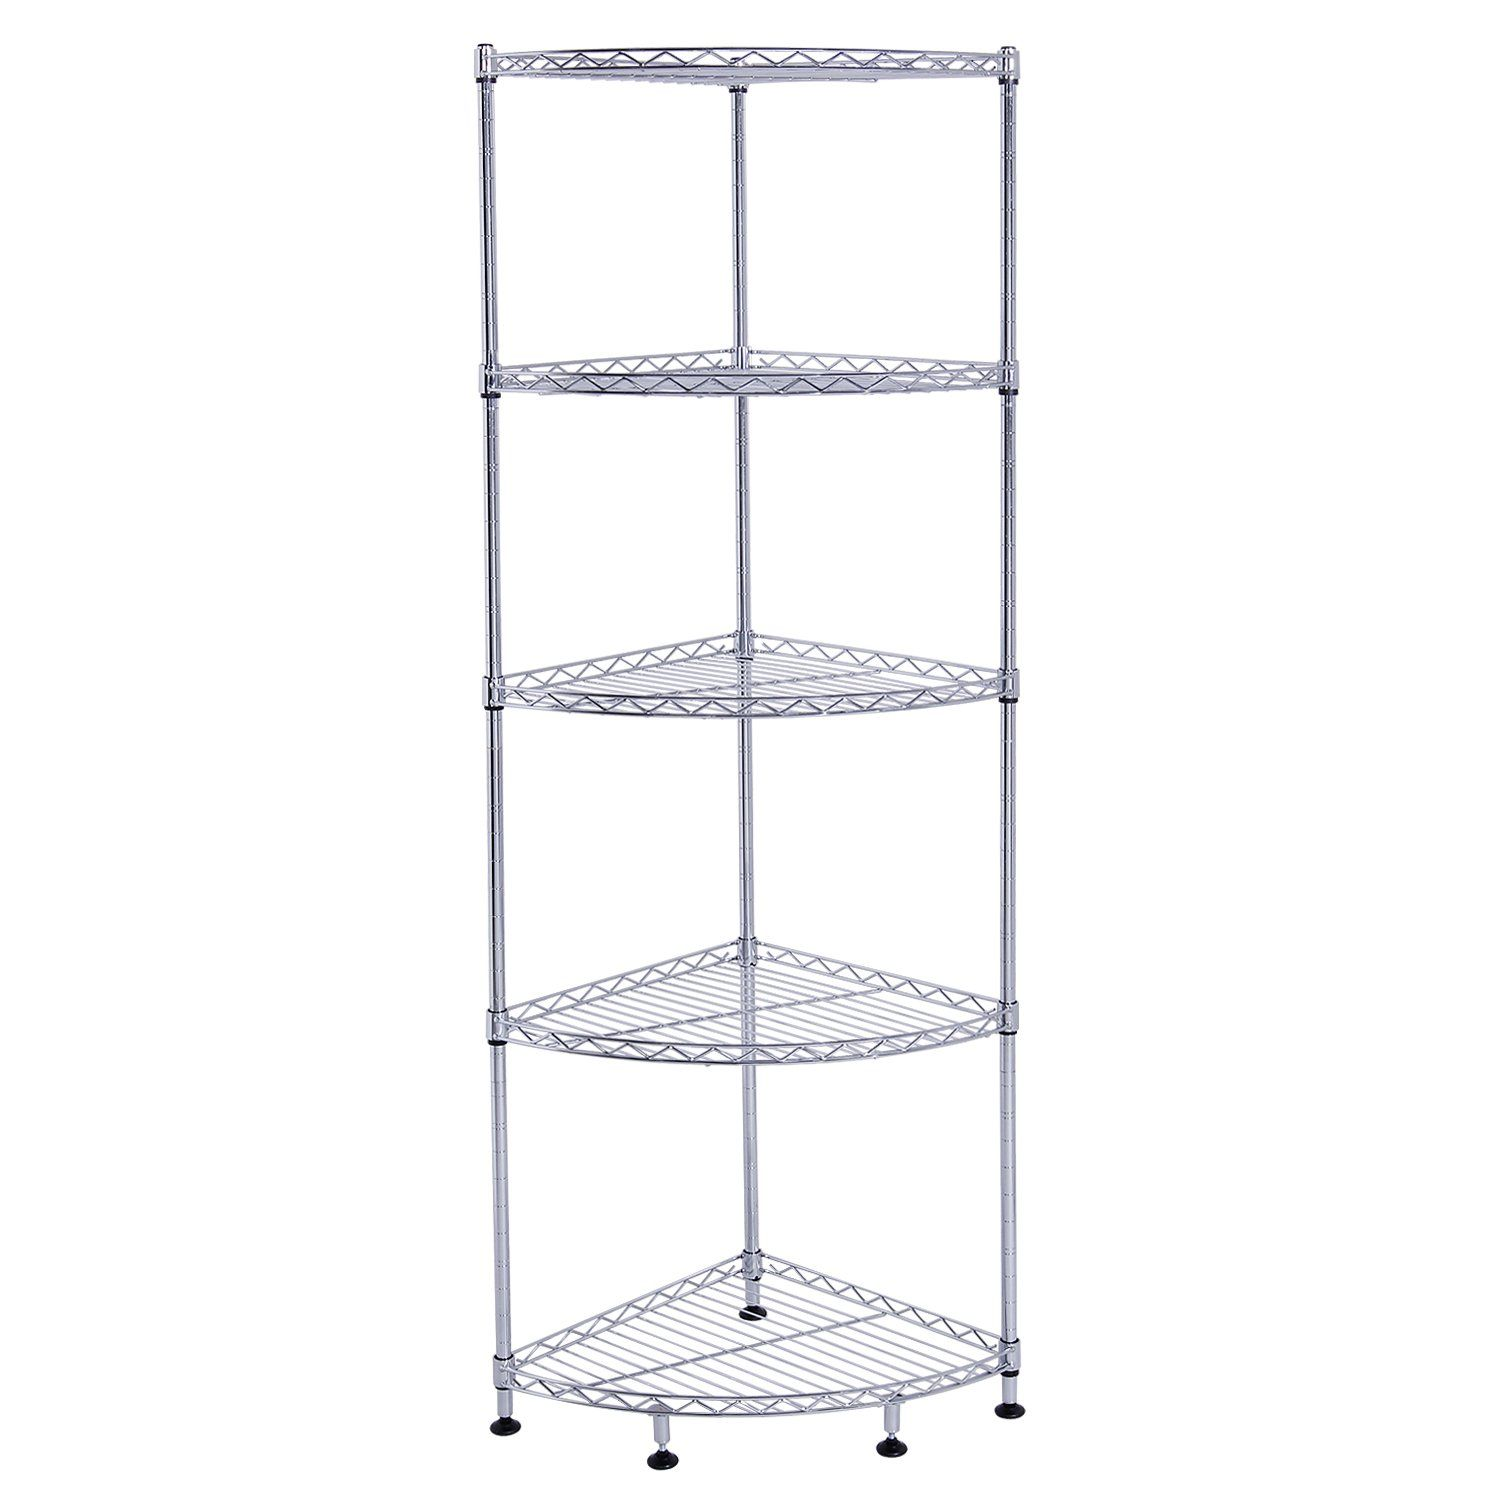 Lifewit Wire Corner Shelf 5 Tiers DIY Height ADjustable Shelving Unit